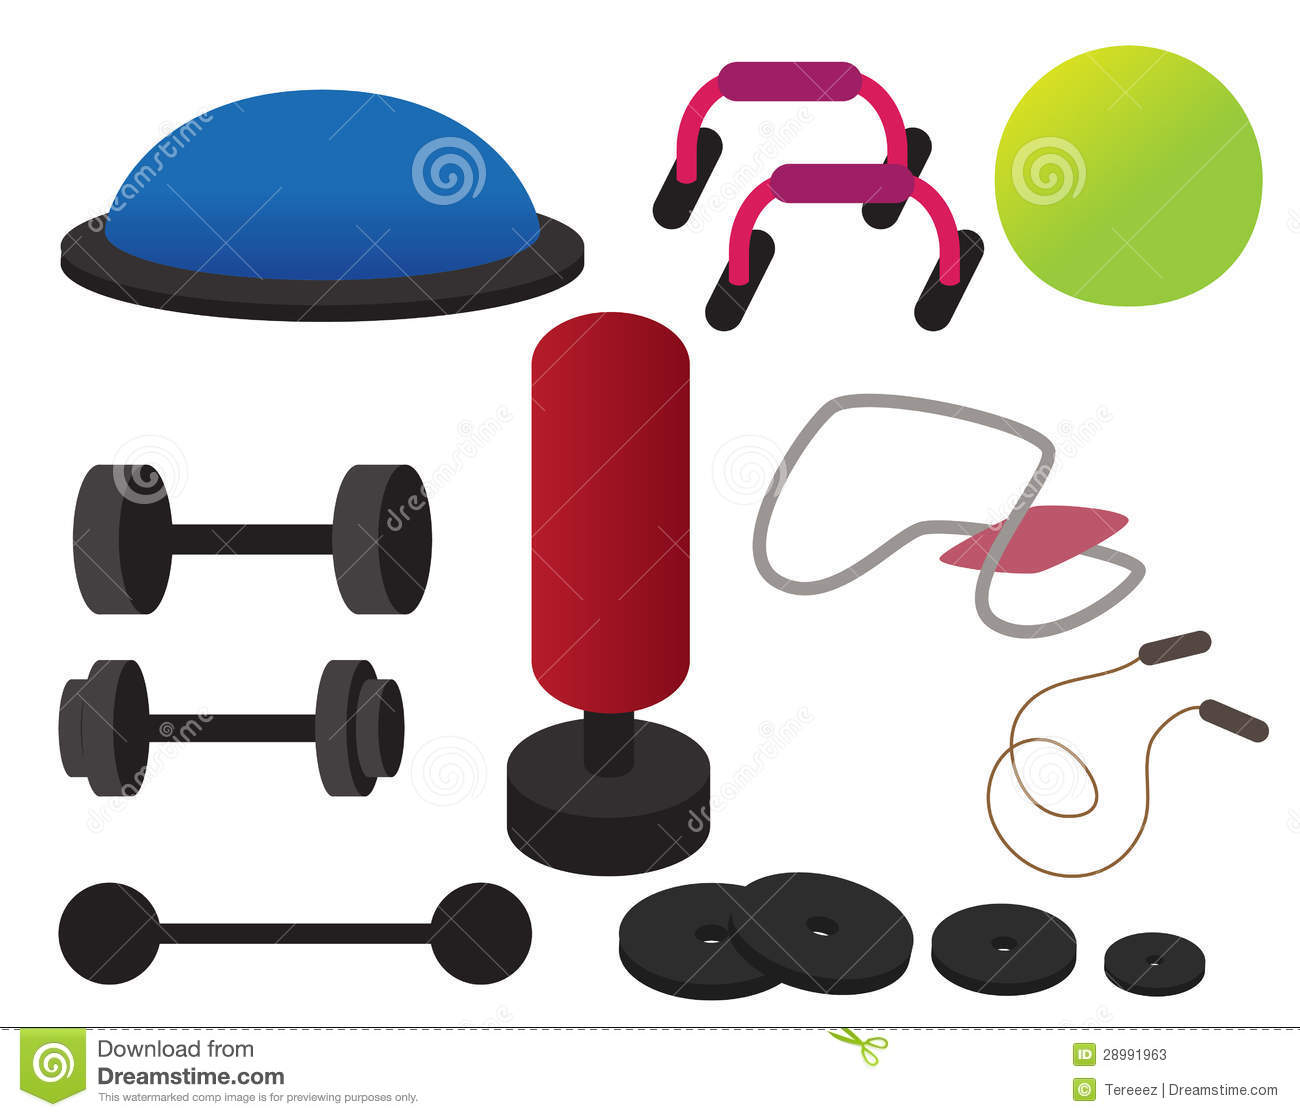 Work out equipment clipart vector royalty free library Exercise Equipment Clipart - Clipart Kid vector royalty free library